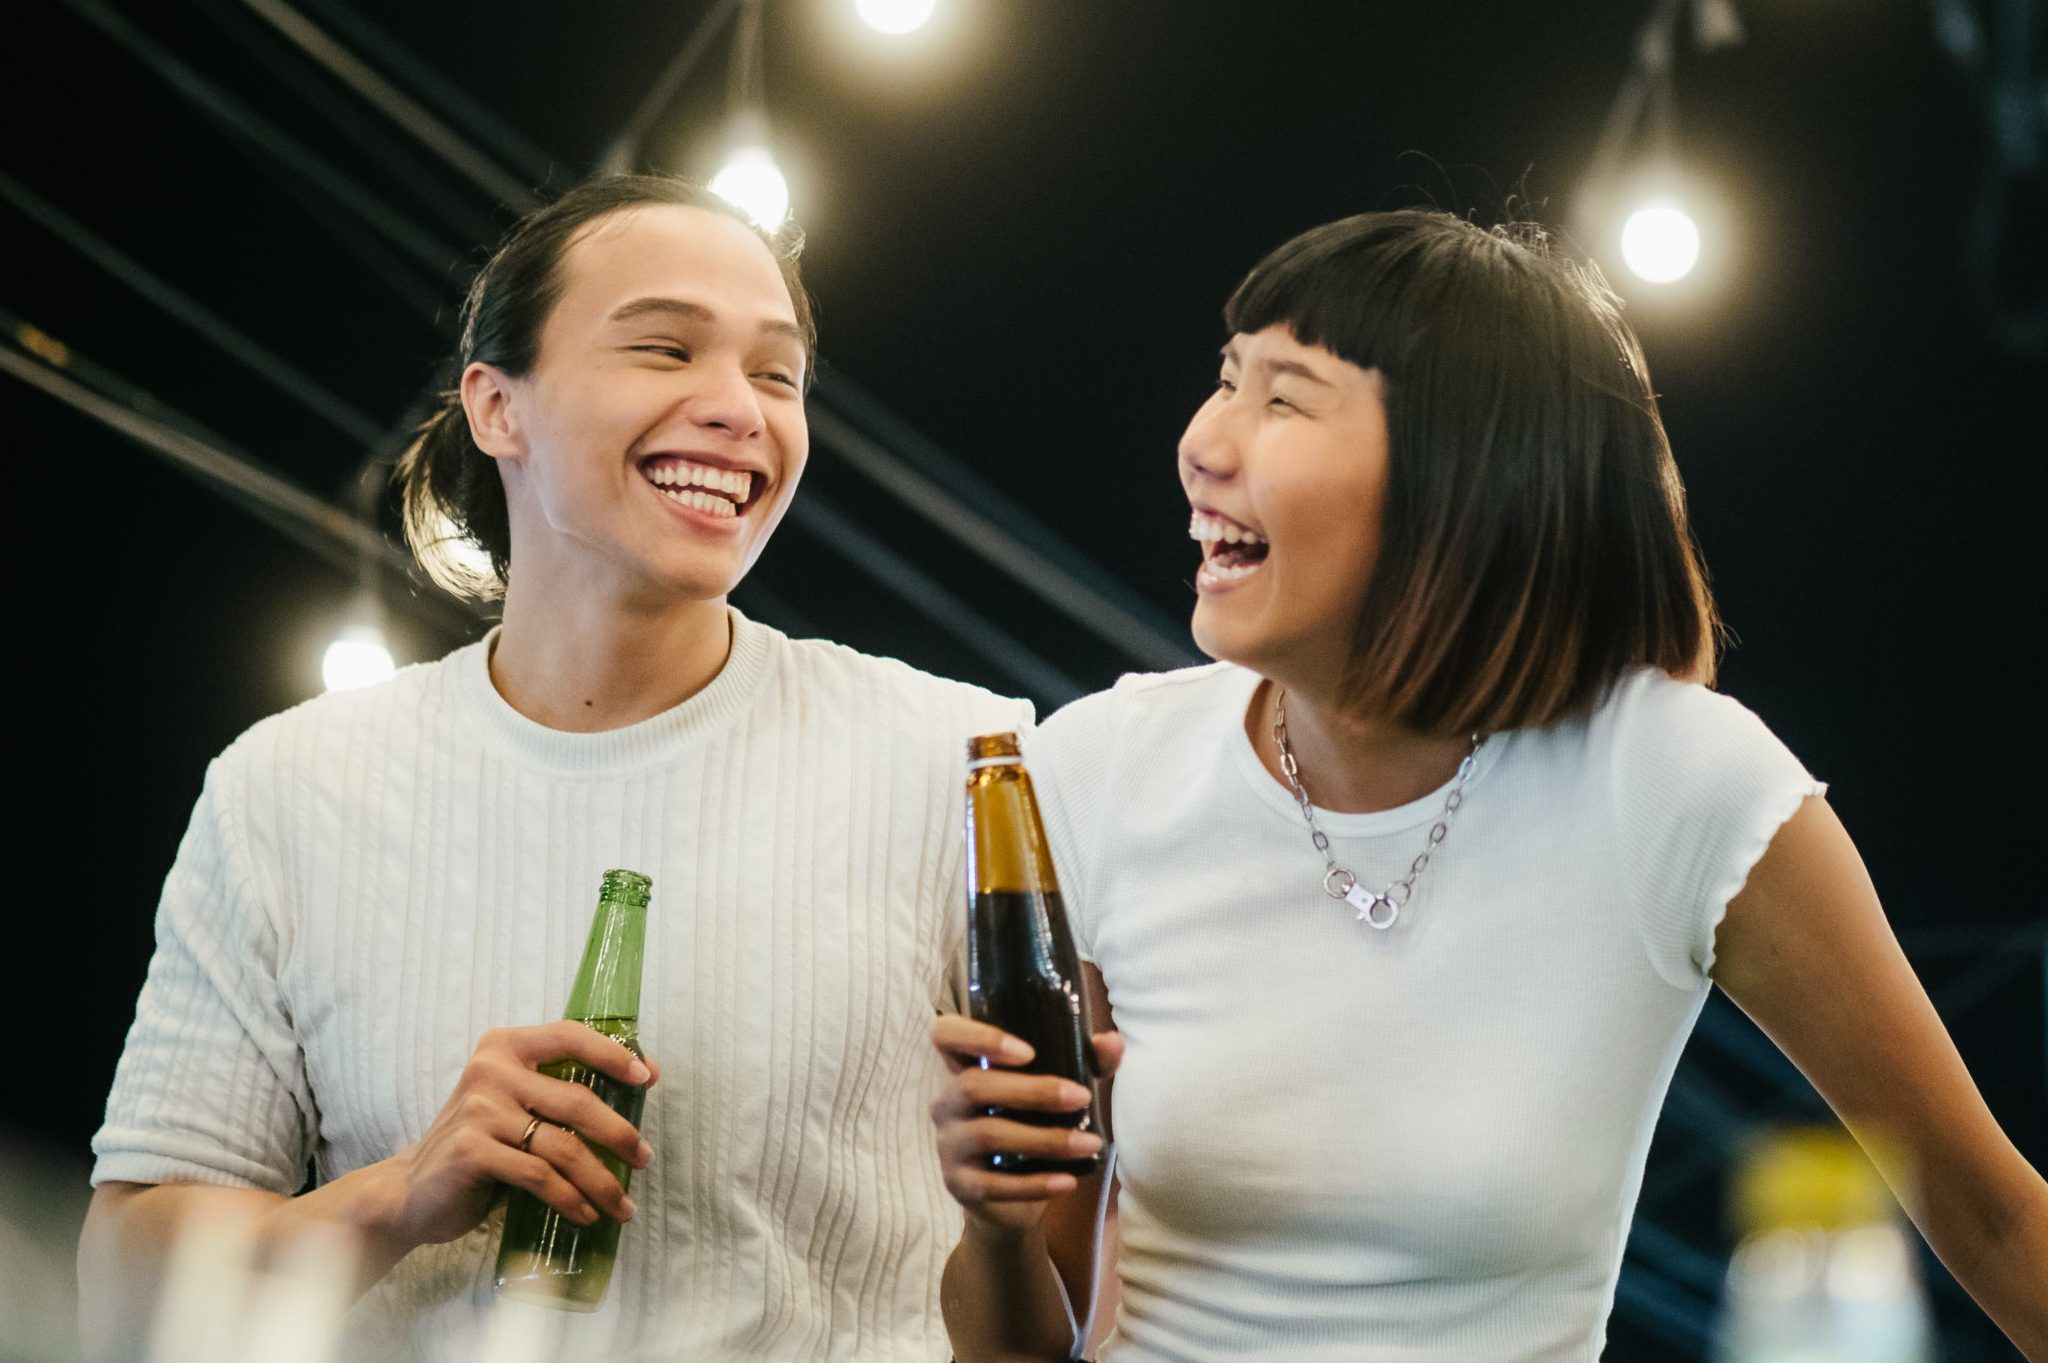 Young asian couple toasting with beer at rooftop party